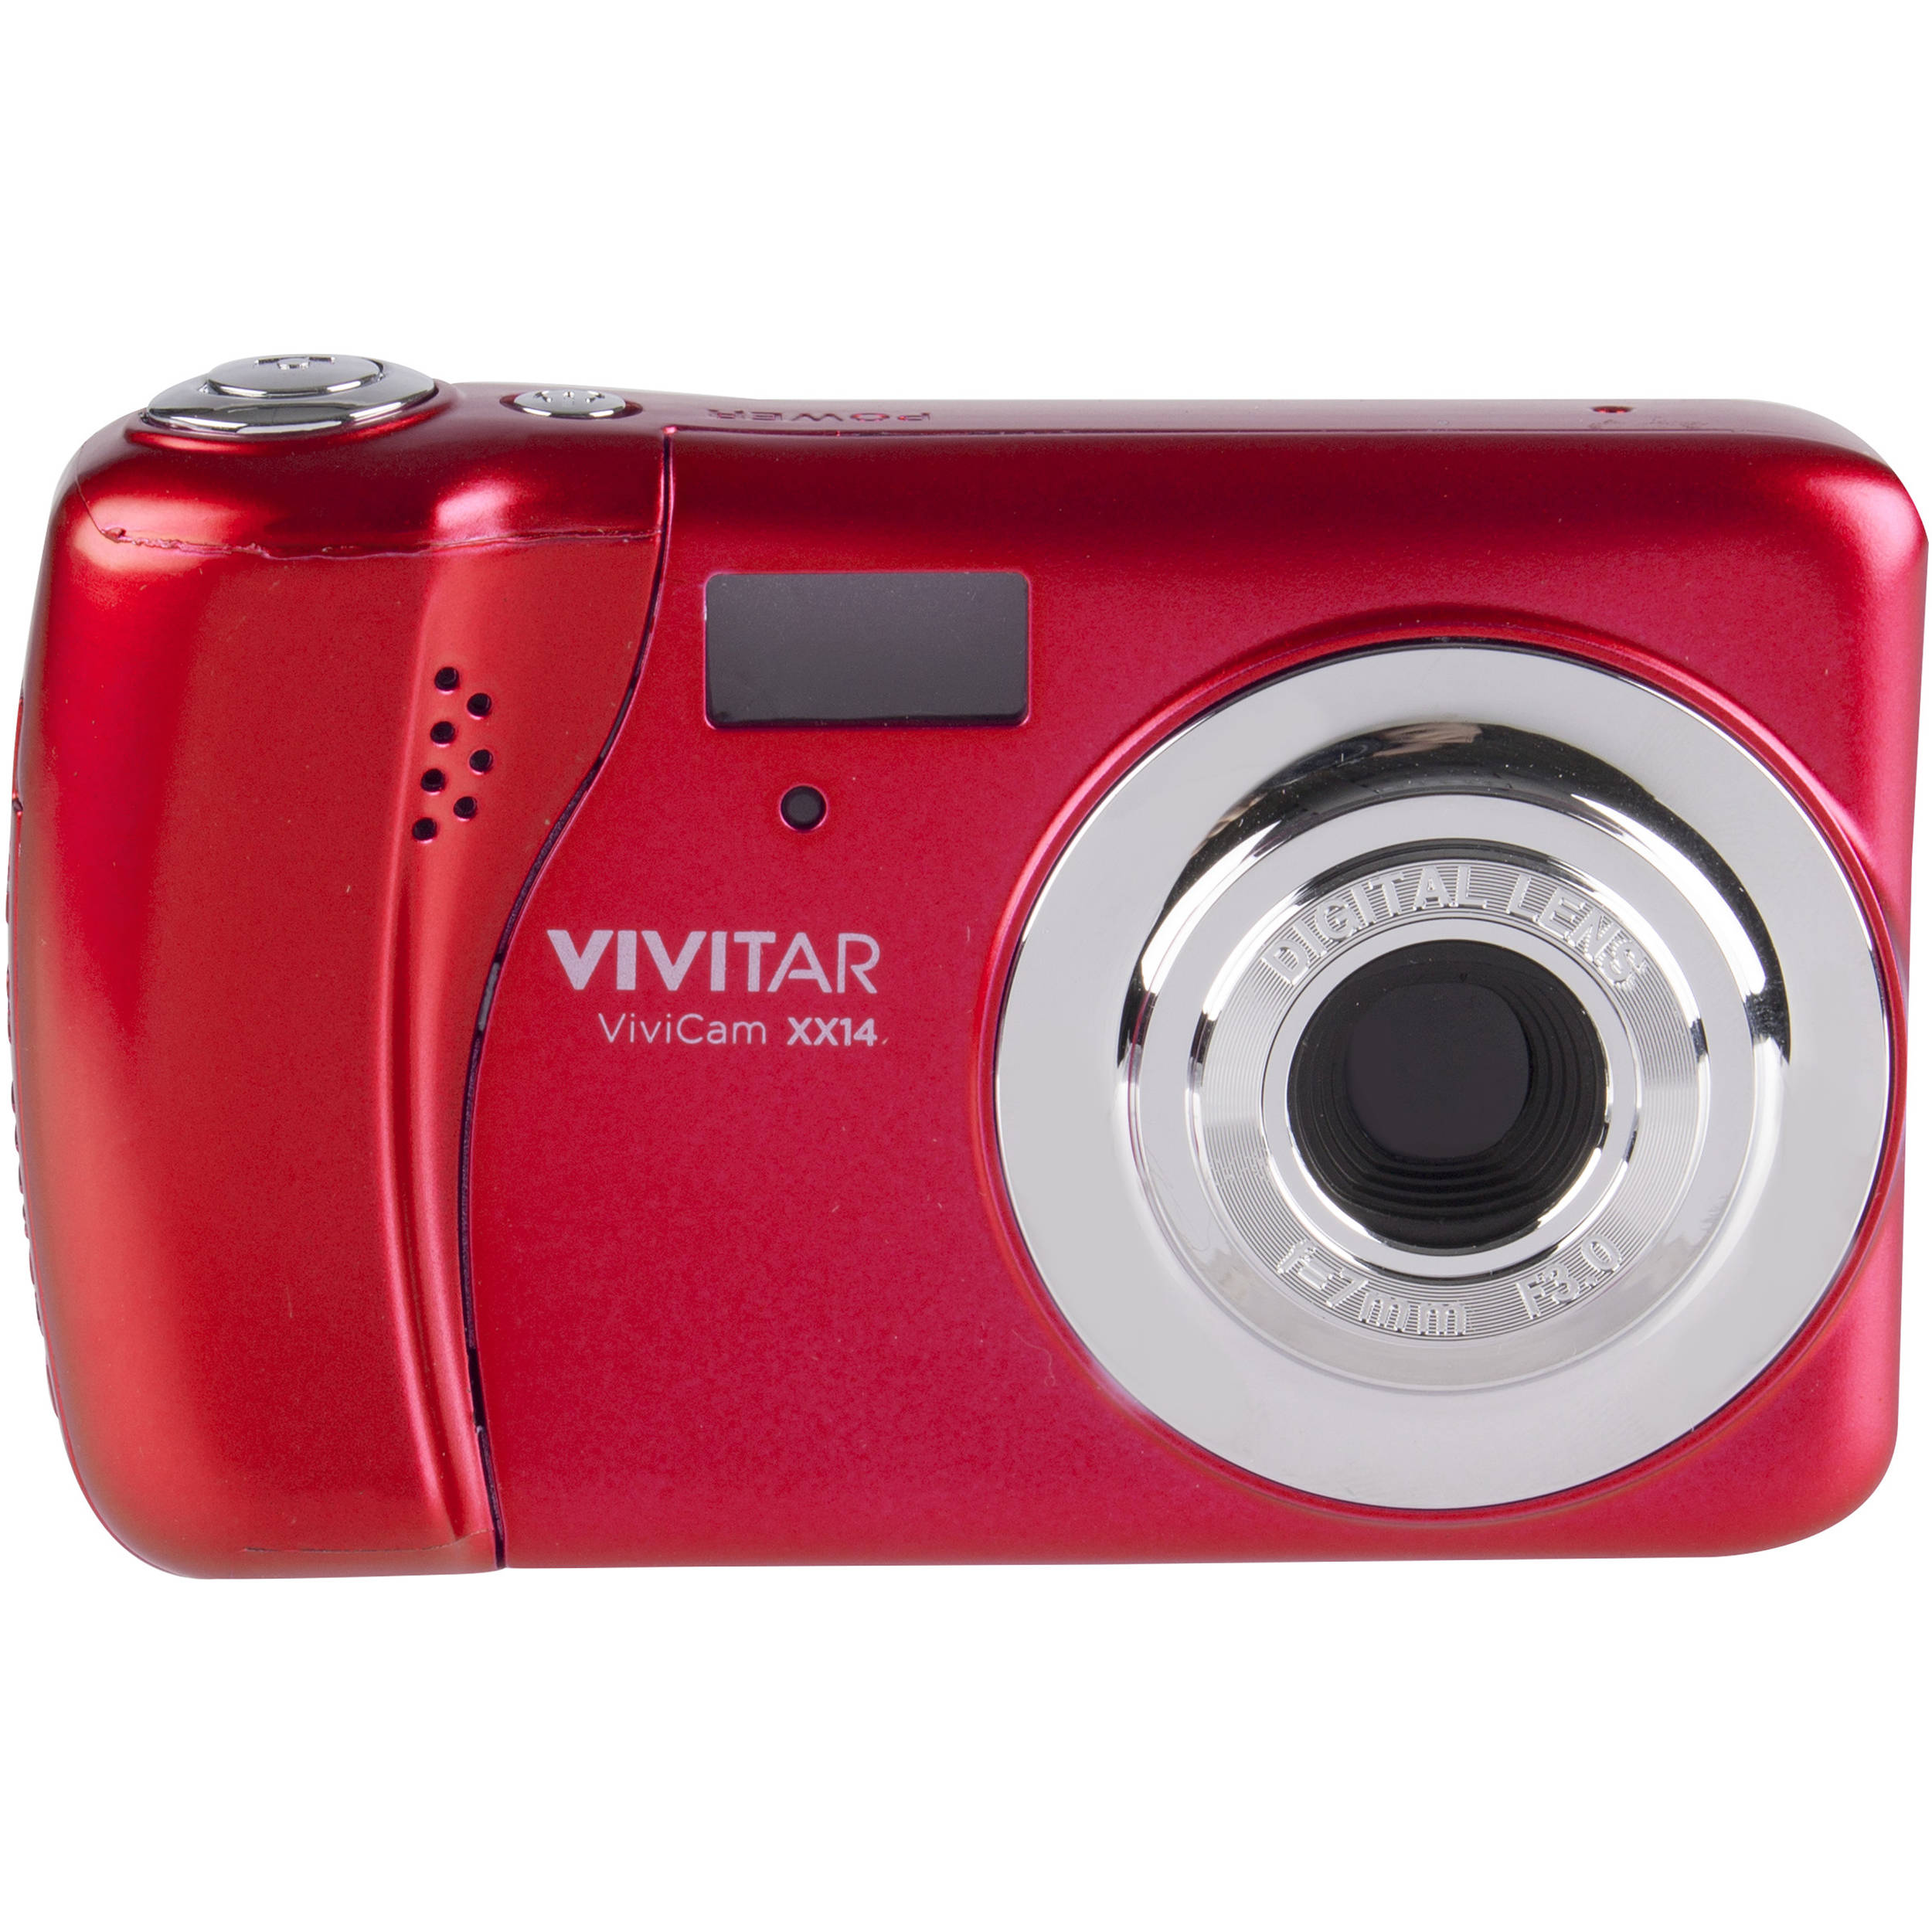 Vivitar Vivicam Xx14 Digital Camera Red Vxx14 Wm Bh Photo And Screen On Disposable Flash Circuit Schematic